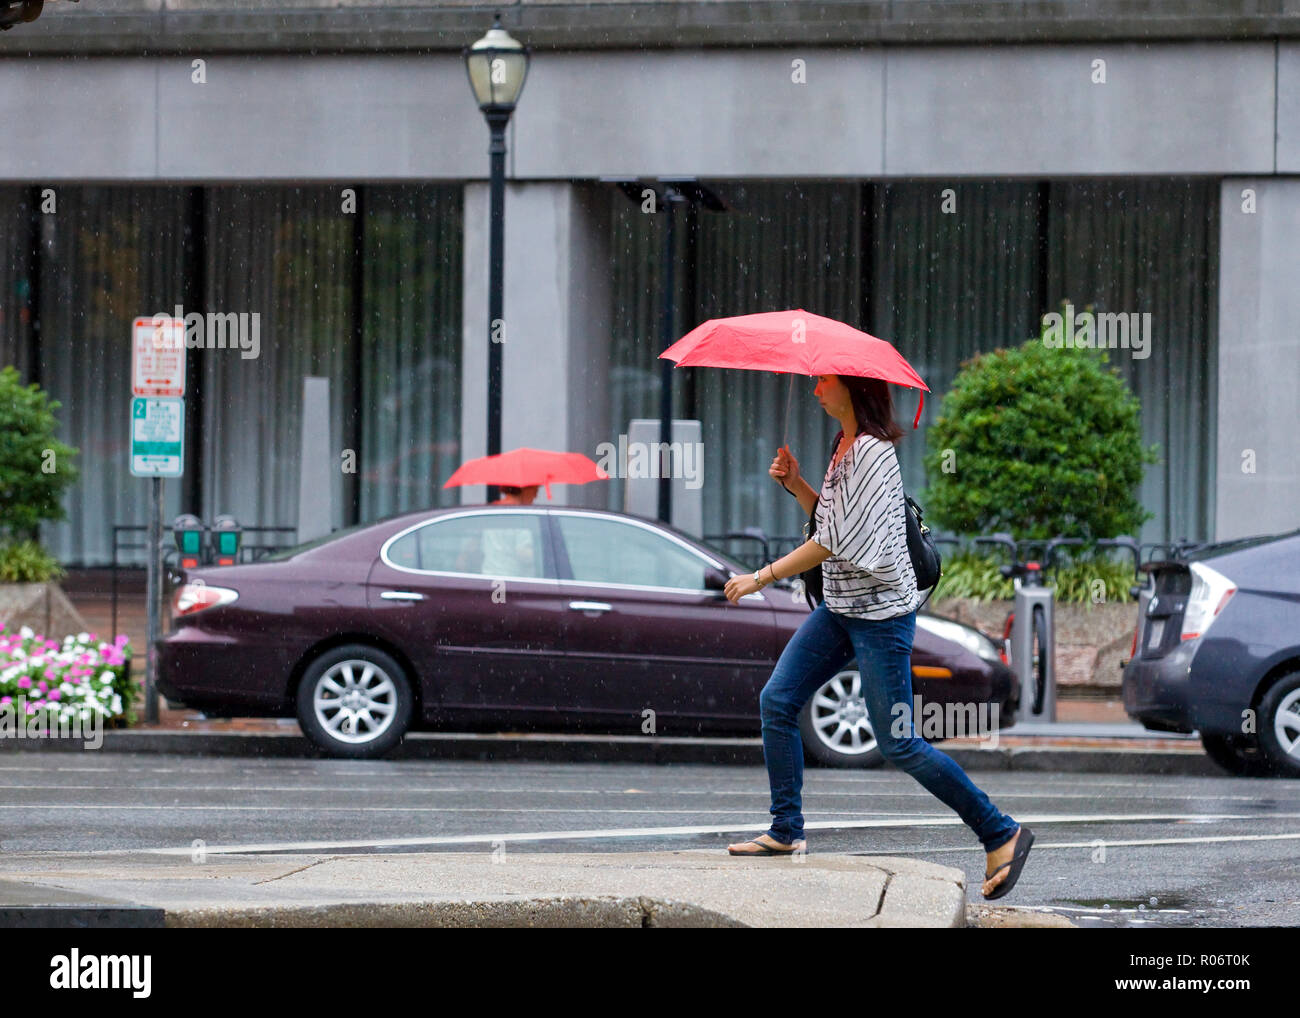 A woman walking alone on a rainy day holding an umbrella - USA - Stock Image